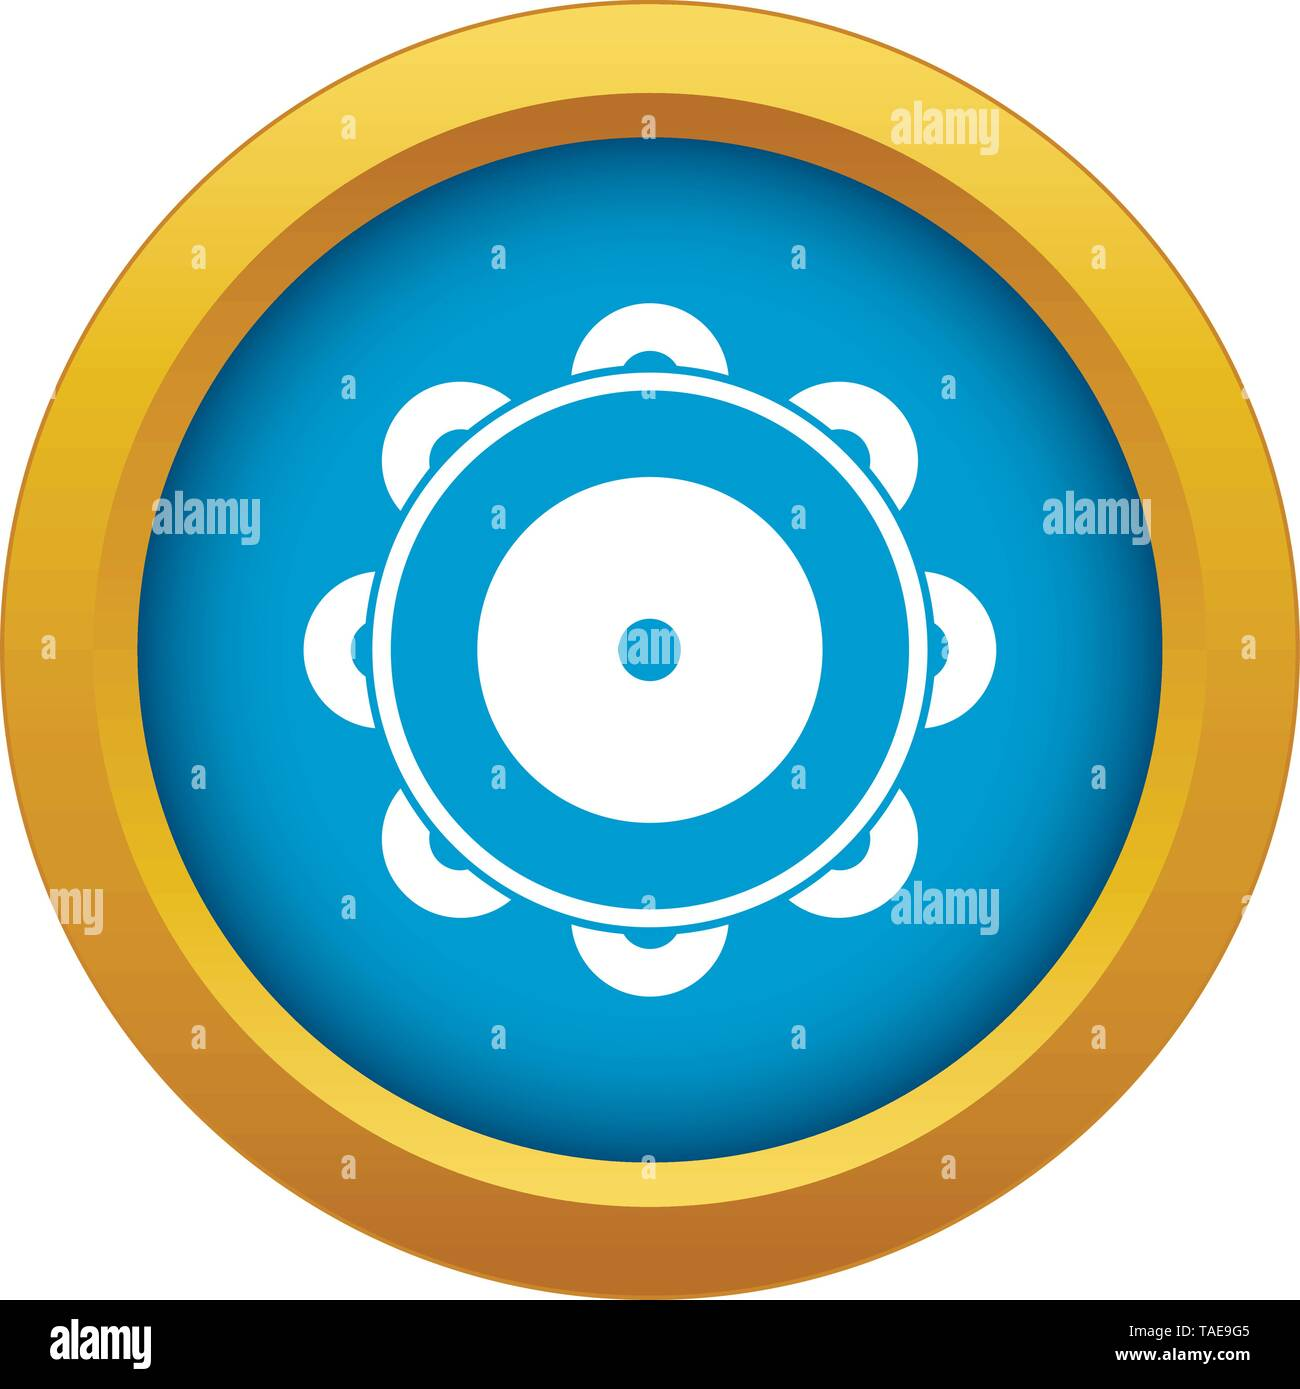 Tambourine icon blue vector isolated - Stock Image